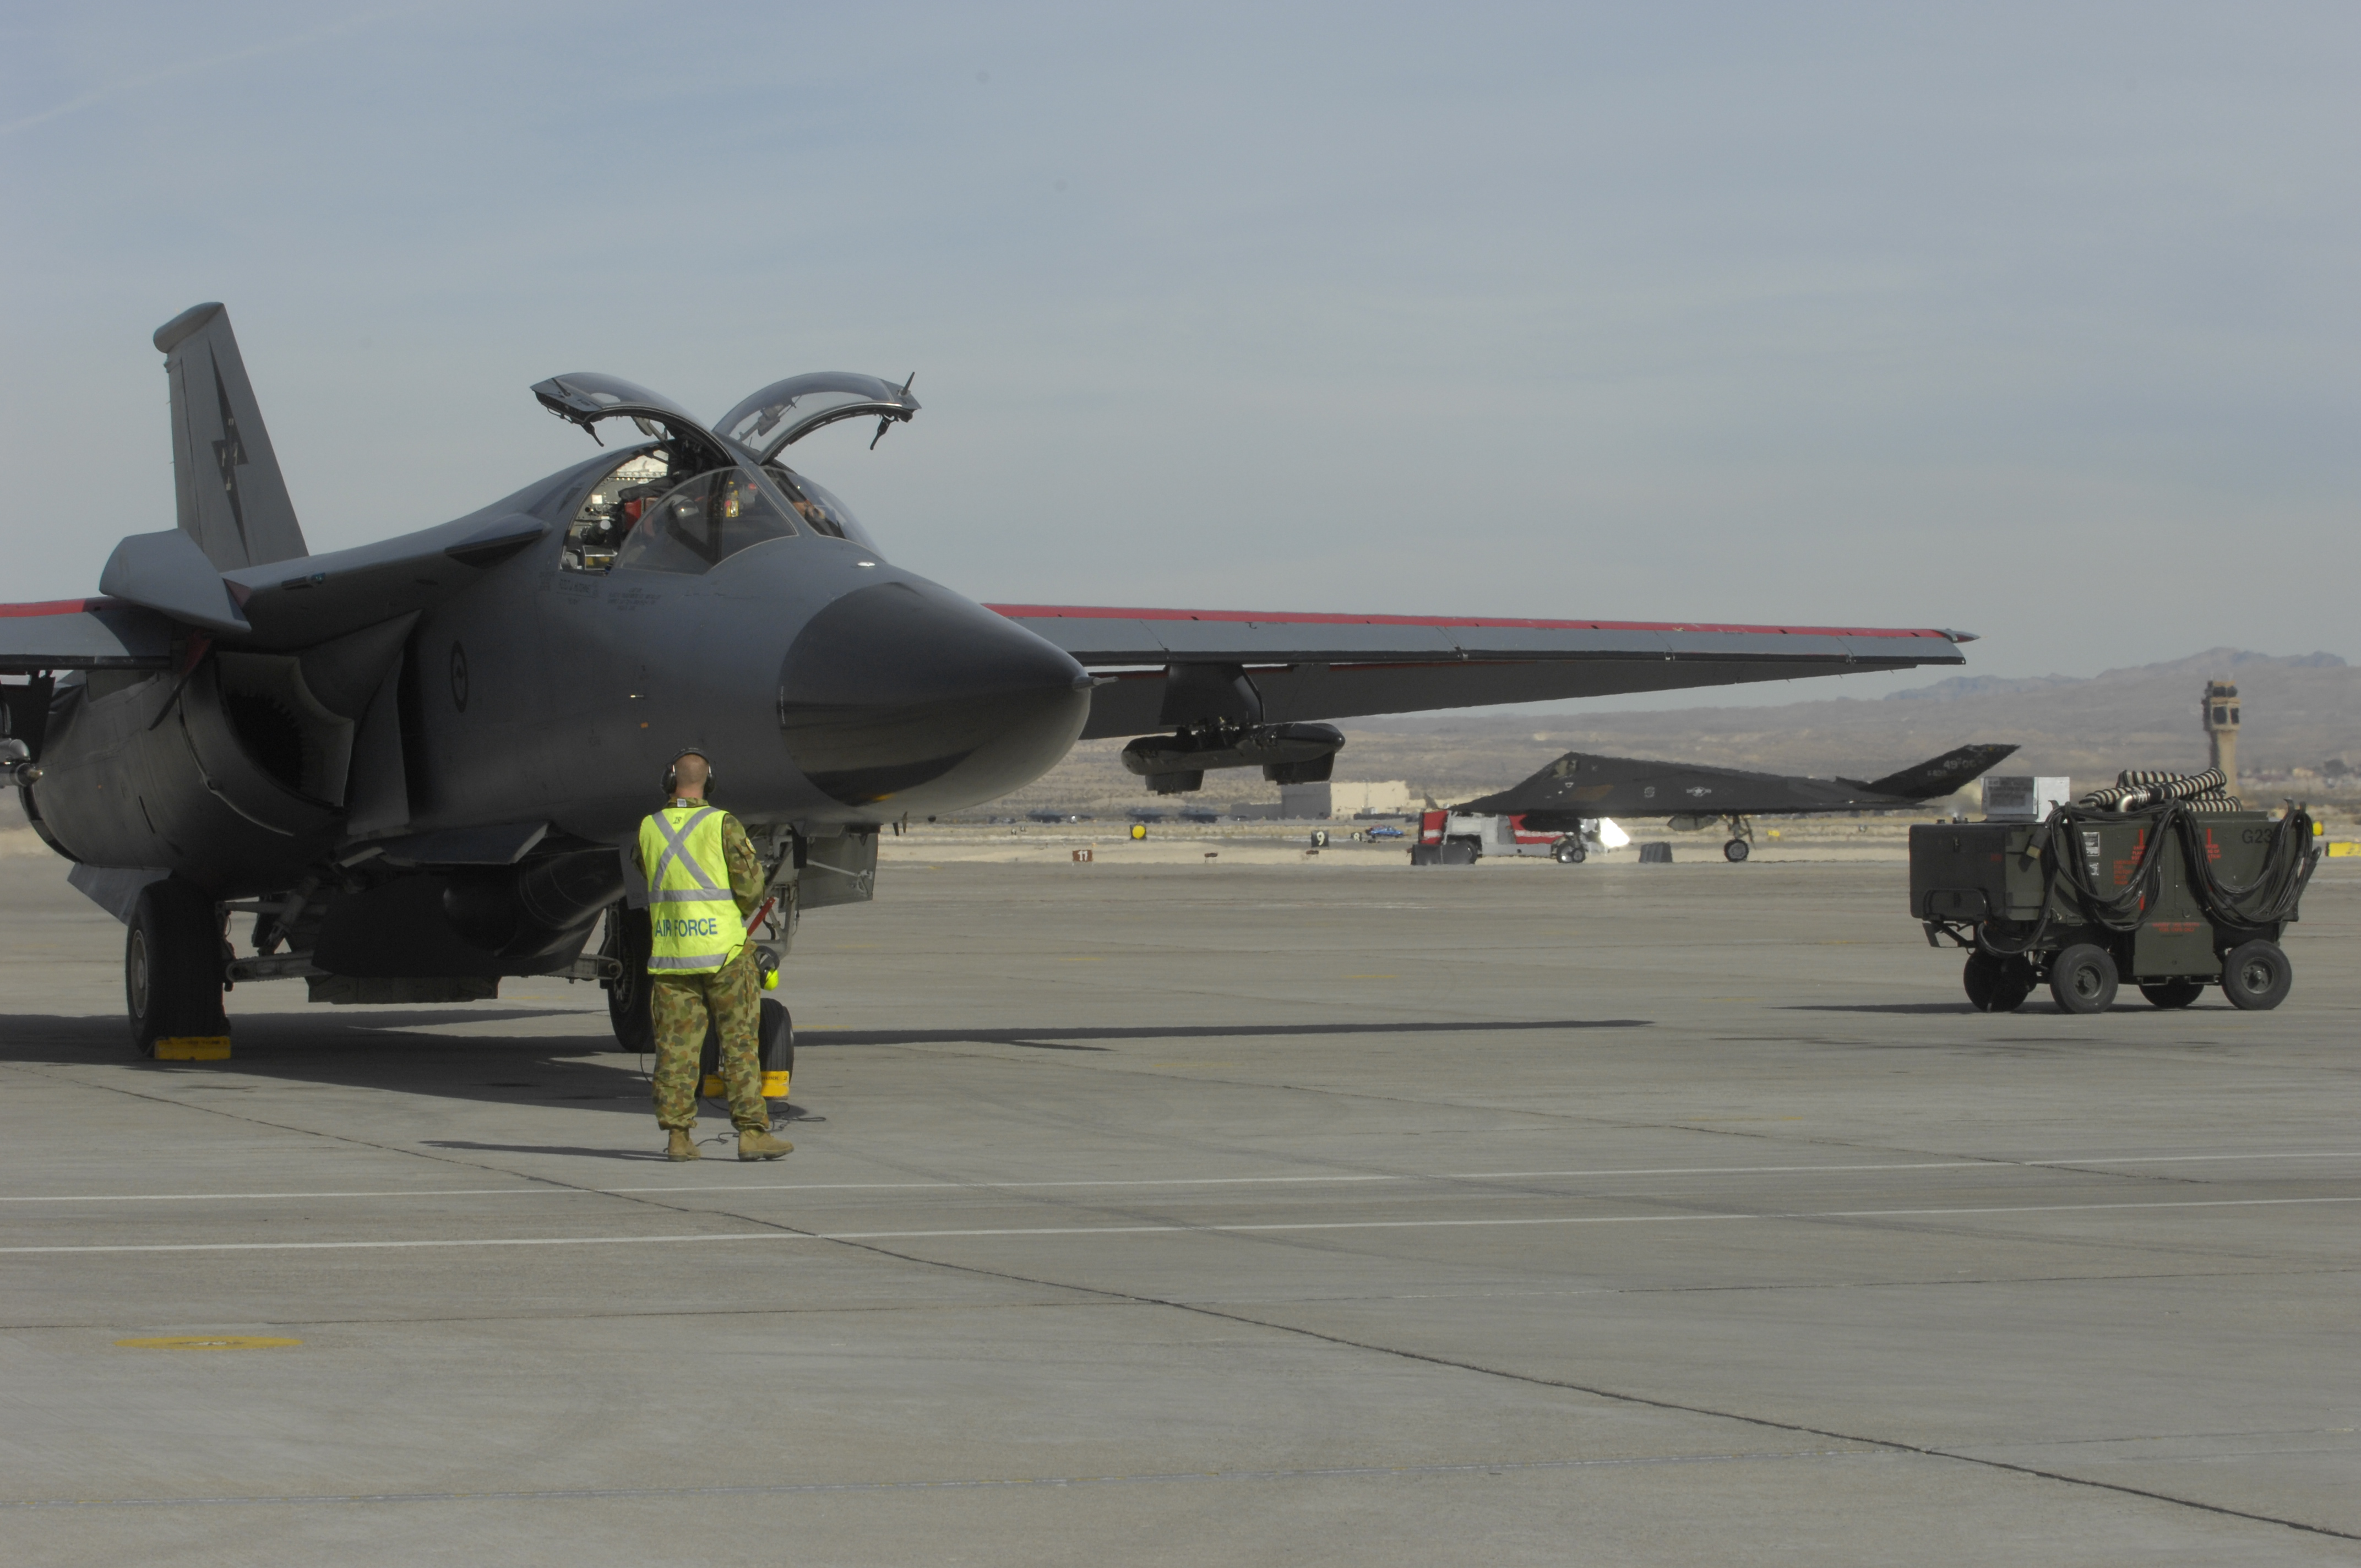 File:F-111C with F-117A 2007.JPG - Wikimedia Commons